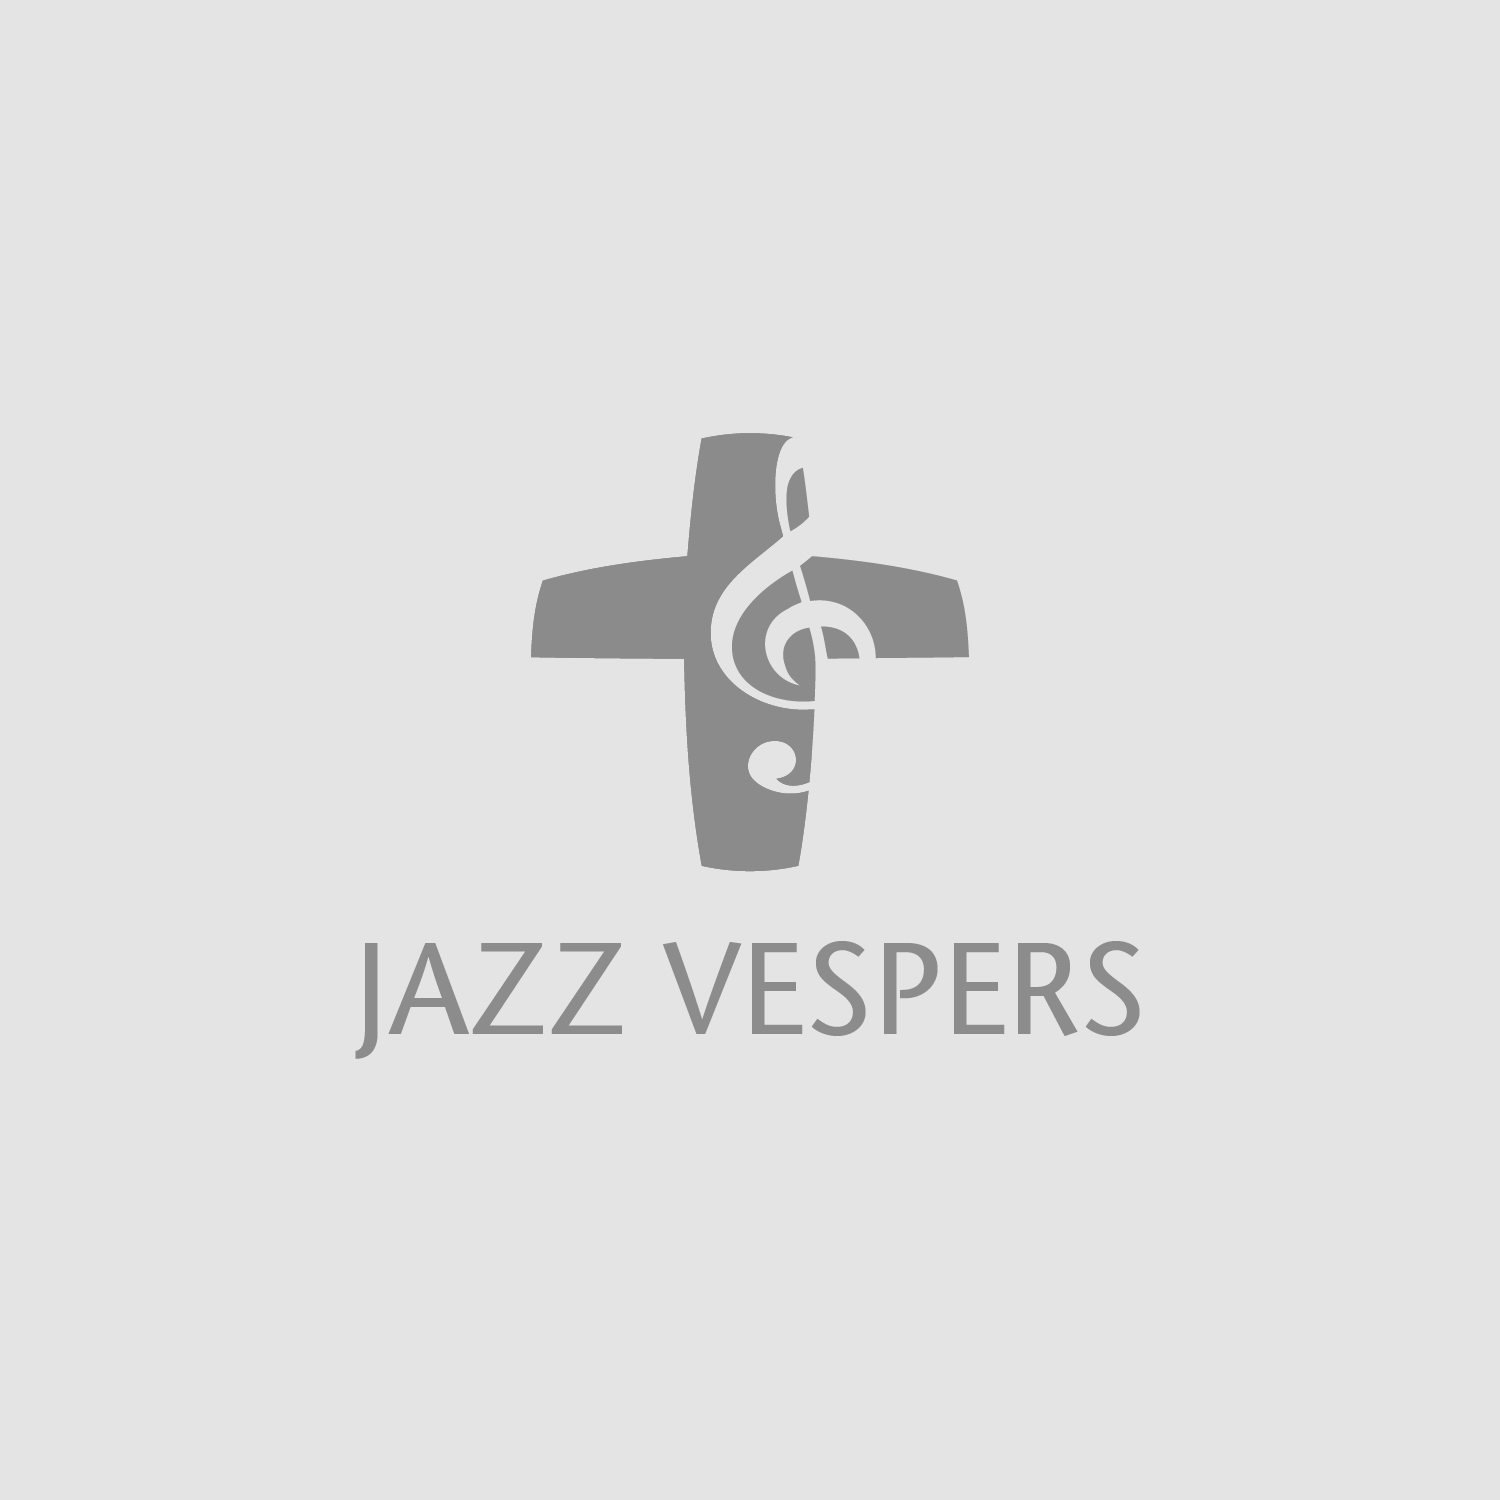 Simeon-Goa_Victoria-Canada_Graphic-Design_Illustration_Logos_Jazz-Vespers.jpg